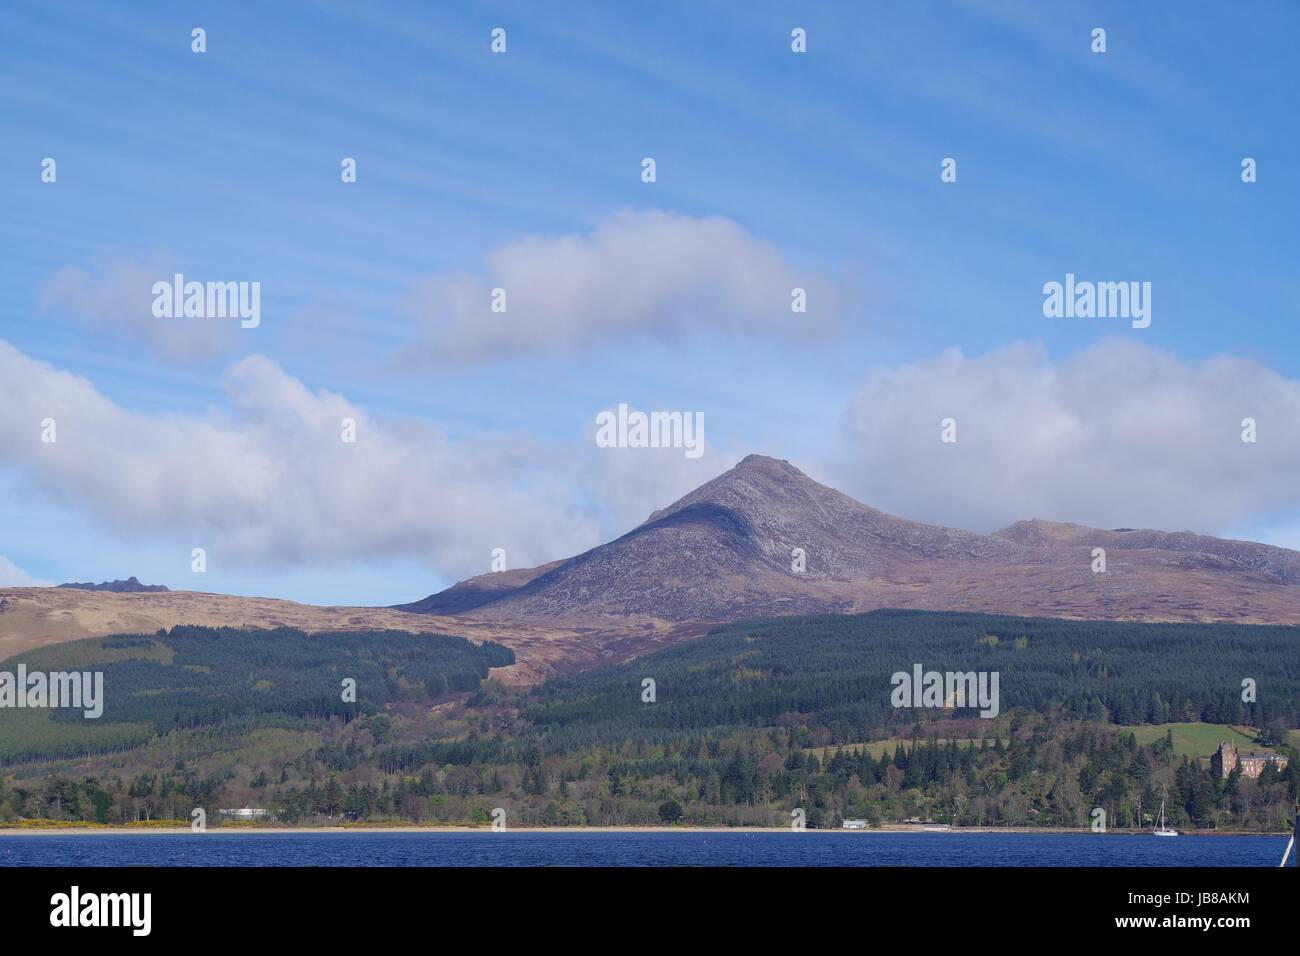 Goat Fell Mountain and Brodrick Castle, Isle of Arran, West Coast of Scotland, April 2017. - Stock Image